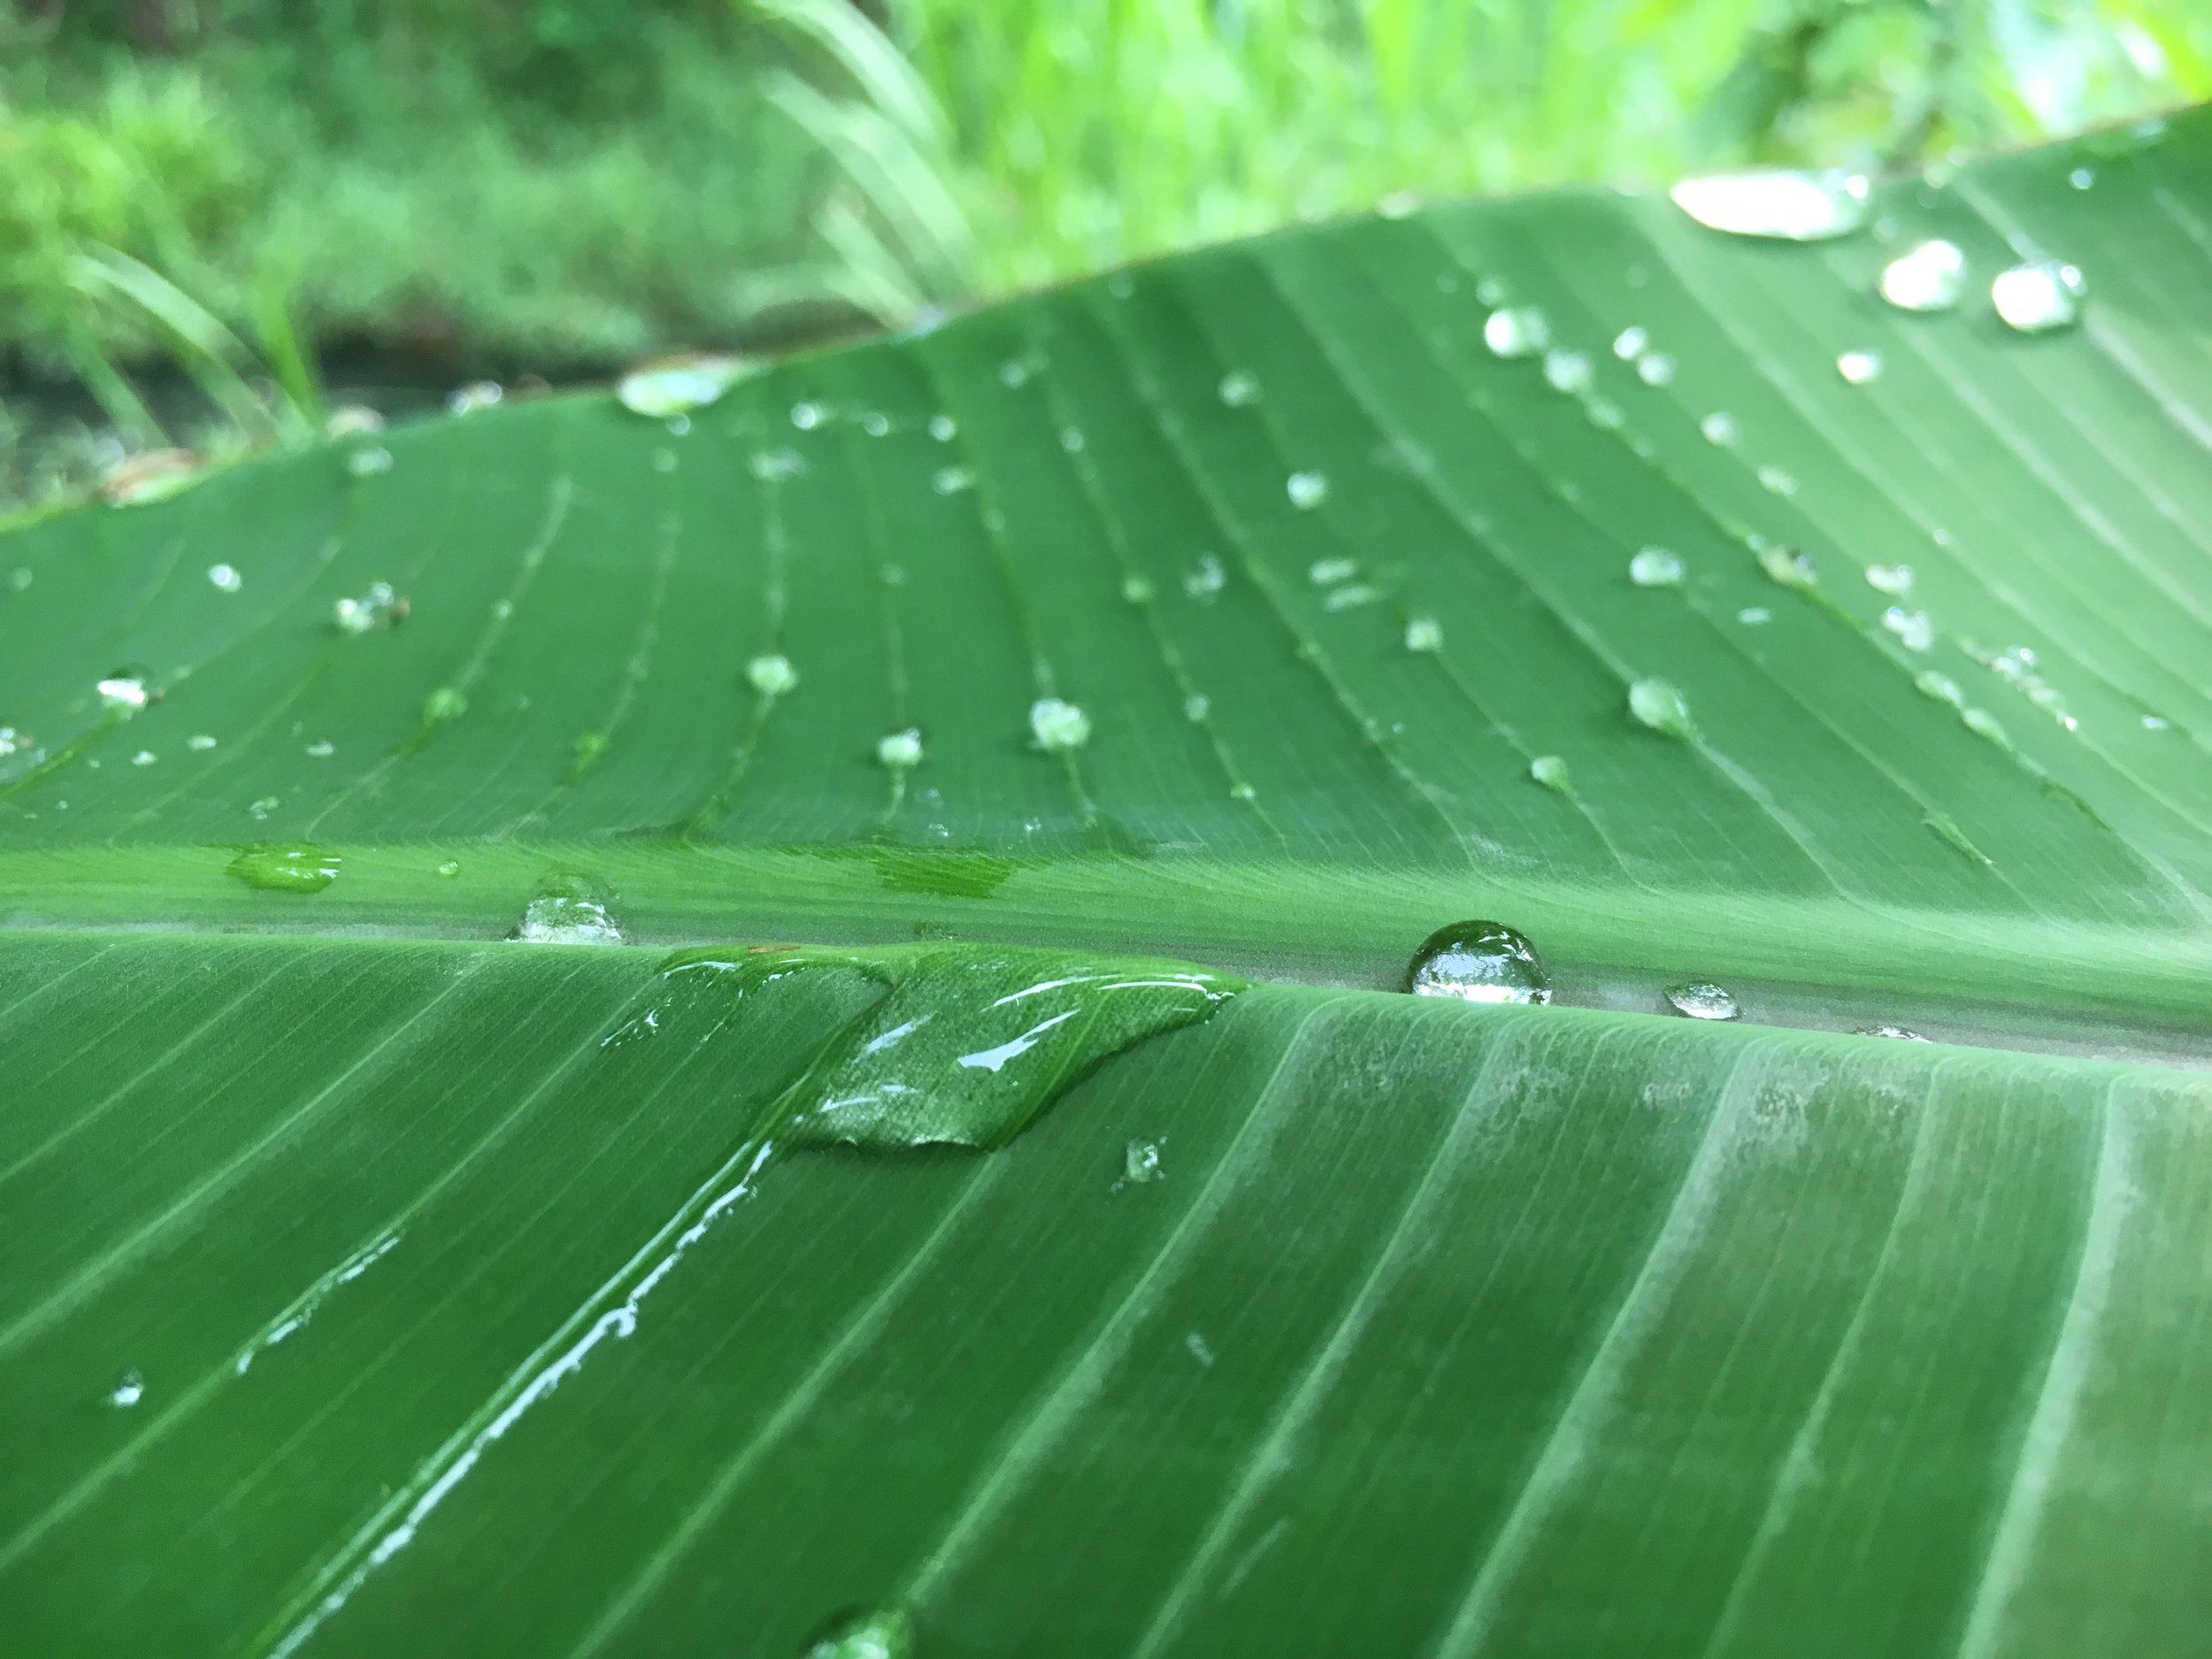 Day 1: I'm grateful for the lush nature that surrounds me during rainy season in northern Thailand.